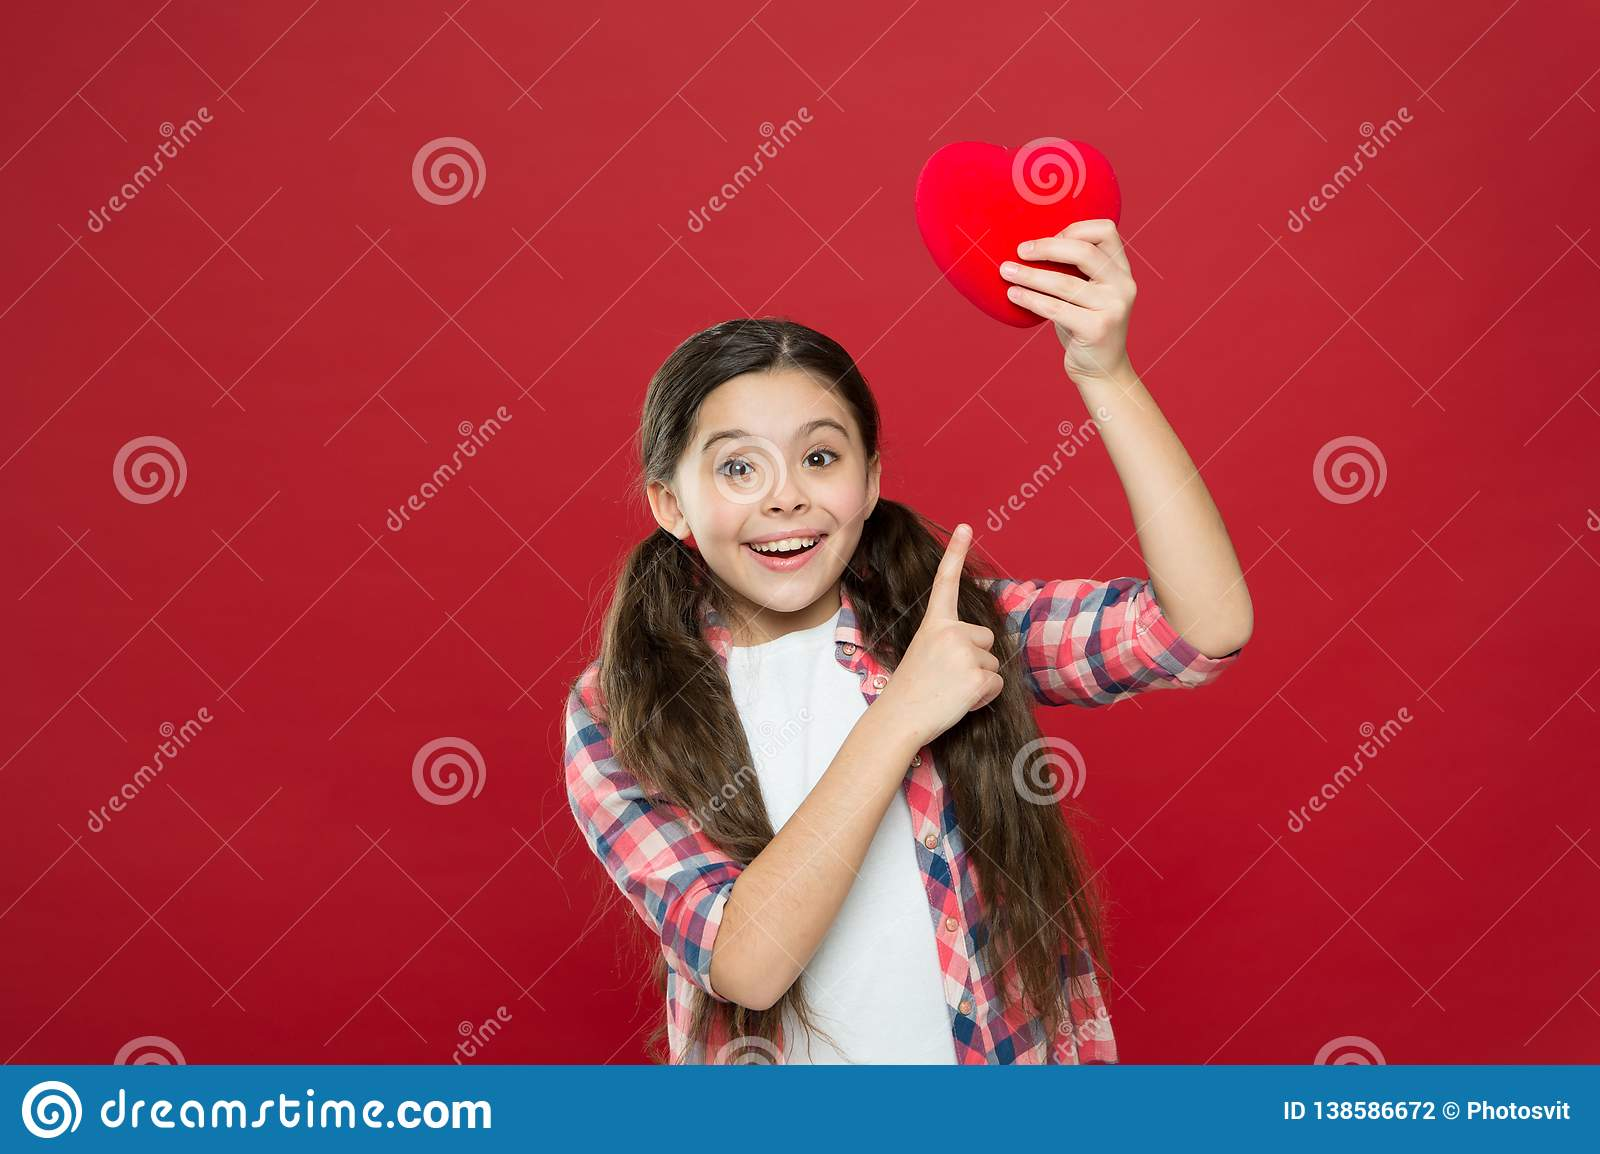 Girl cute child hold heart symbol love. Celebrate valentines day. Love and romantic feelings  sc 1 st  Dreamstime.com & Girl Cute Child Hold Heart Symbol Love. Celebrate Valentines Day ...